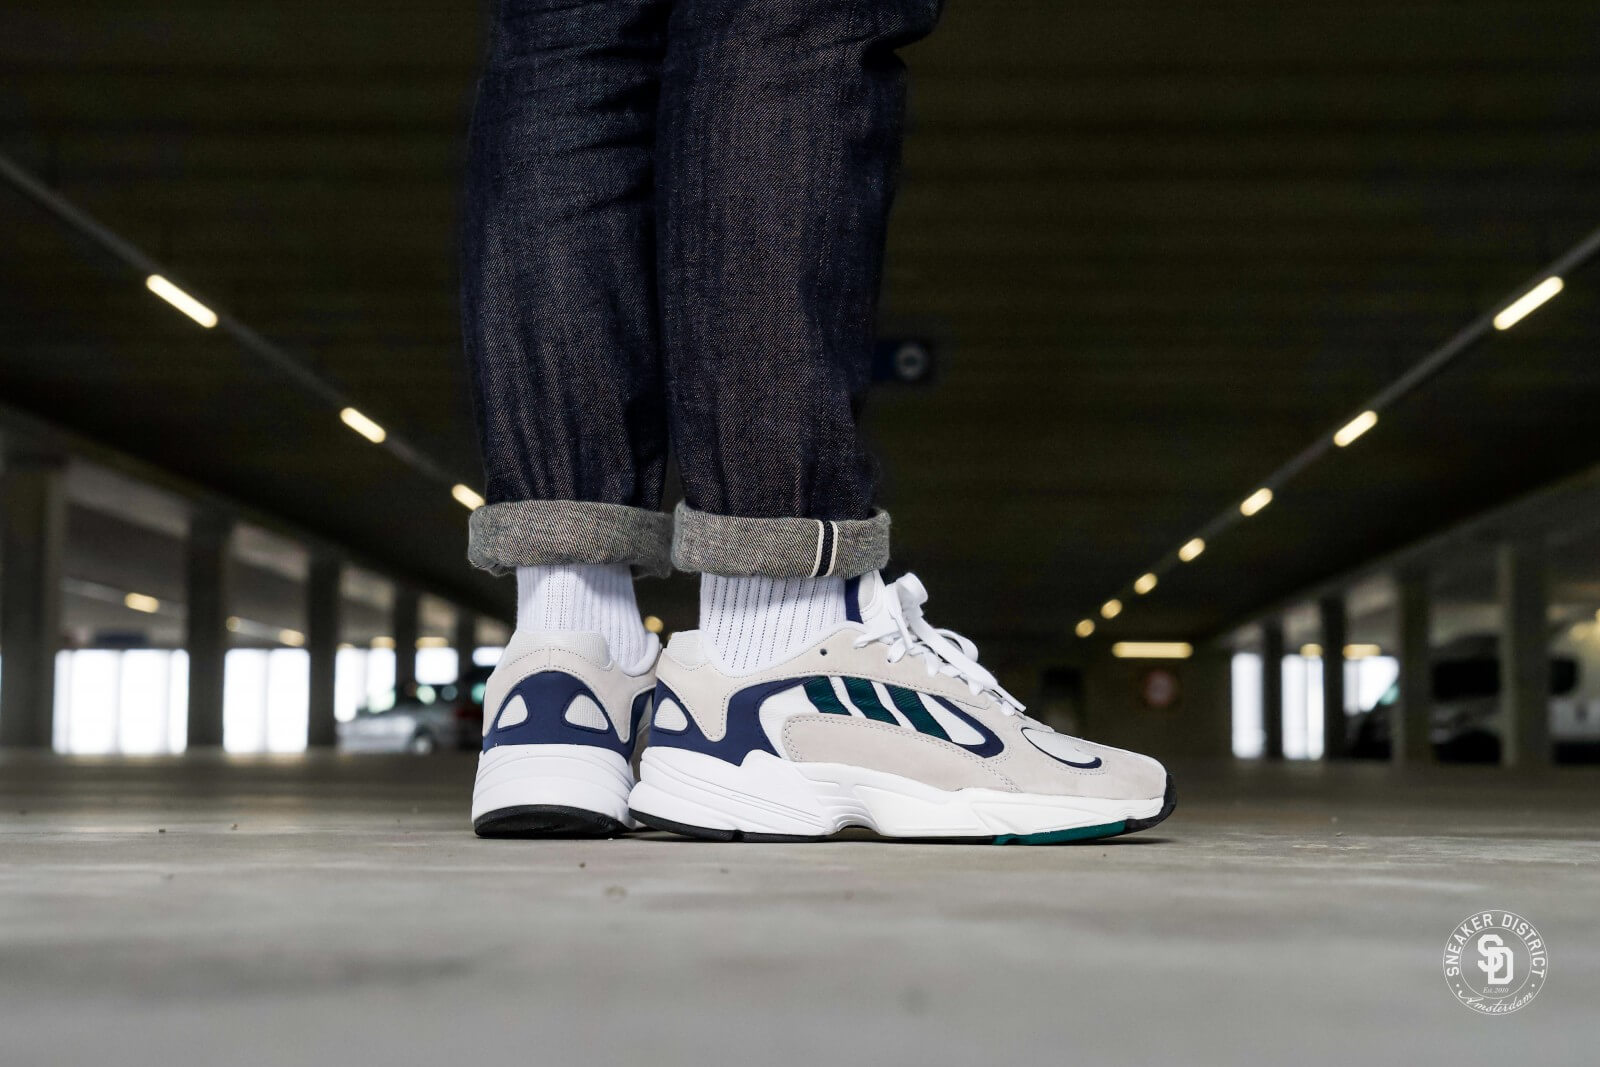 Manual mal humor Comportamiento  Adidas Yung-1 Footwear White/Noble Green-Dark Blue - G27031